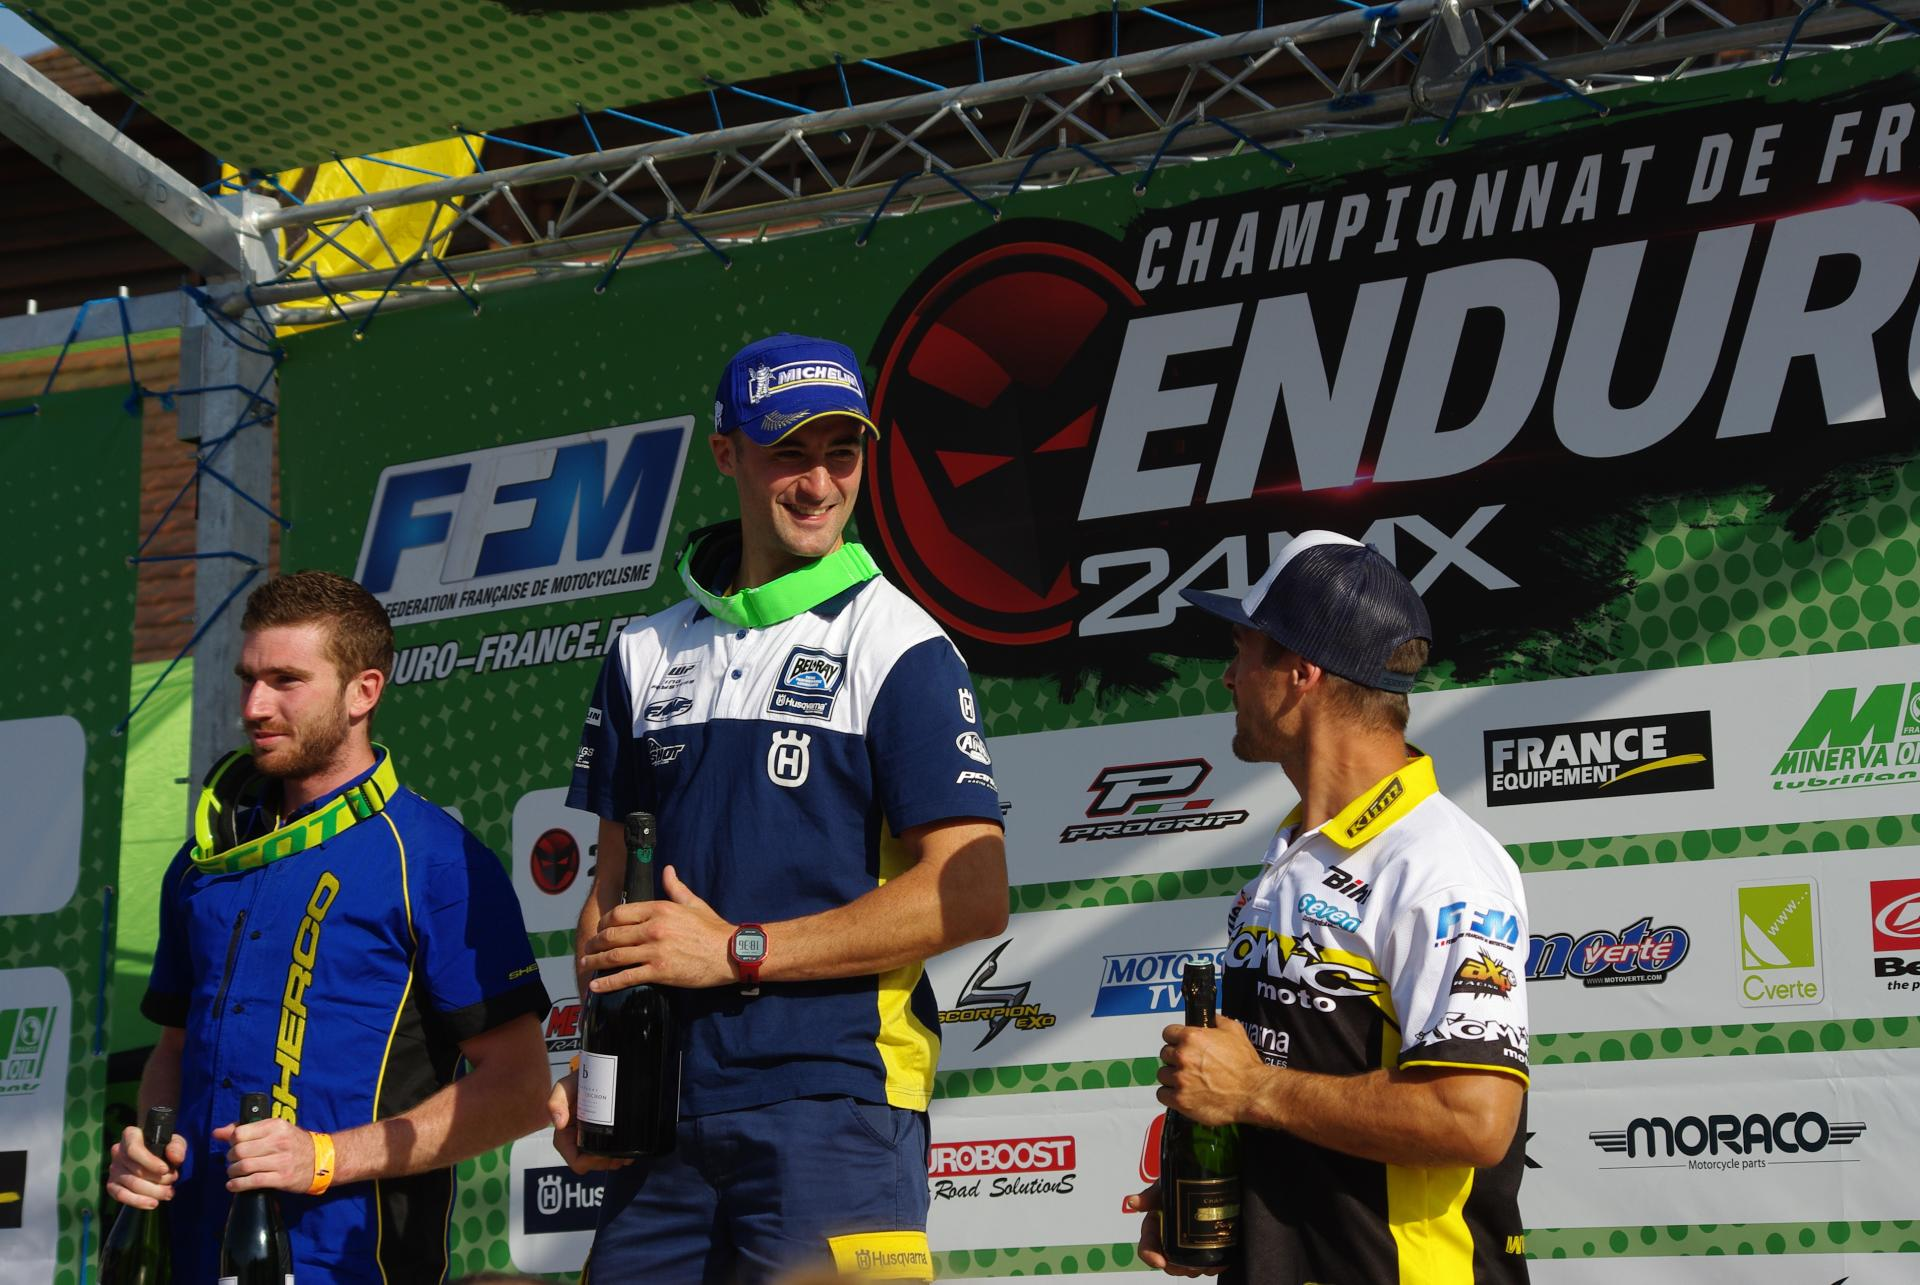 Podium E2: Renet, Larrieux,